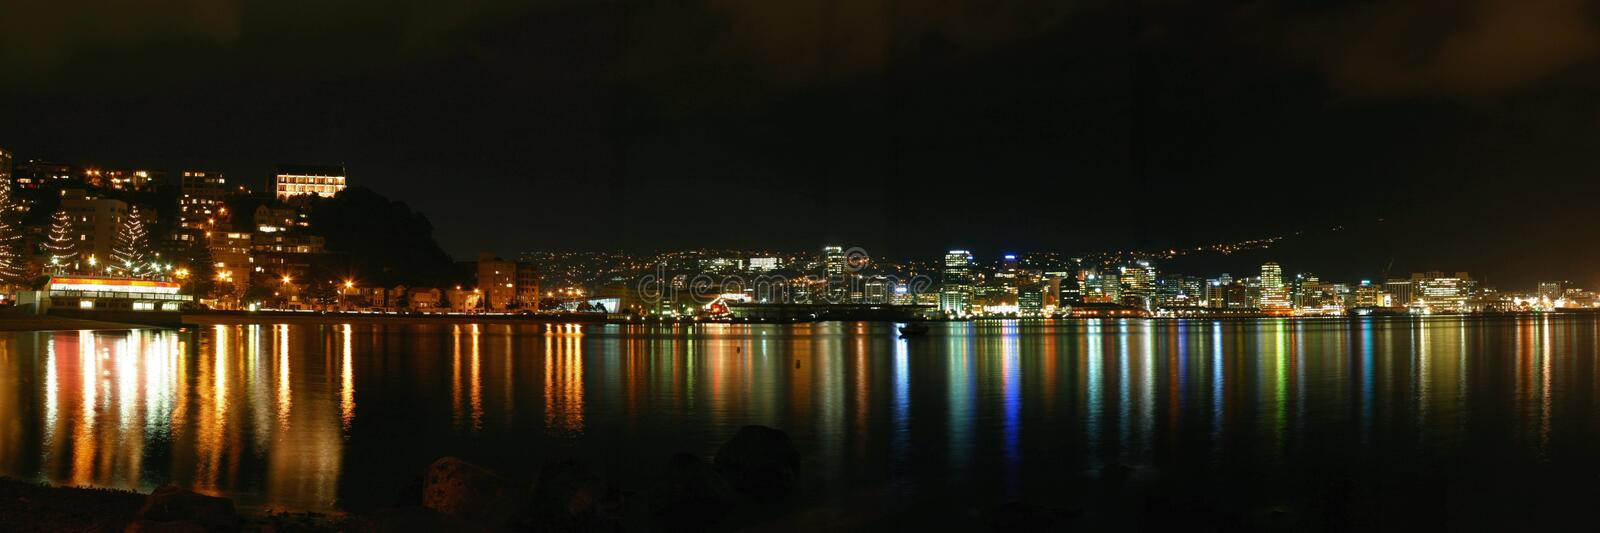 Wellington City By Night - New Zealand royalty free stock photography